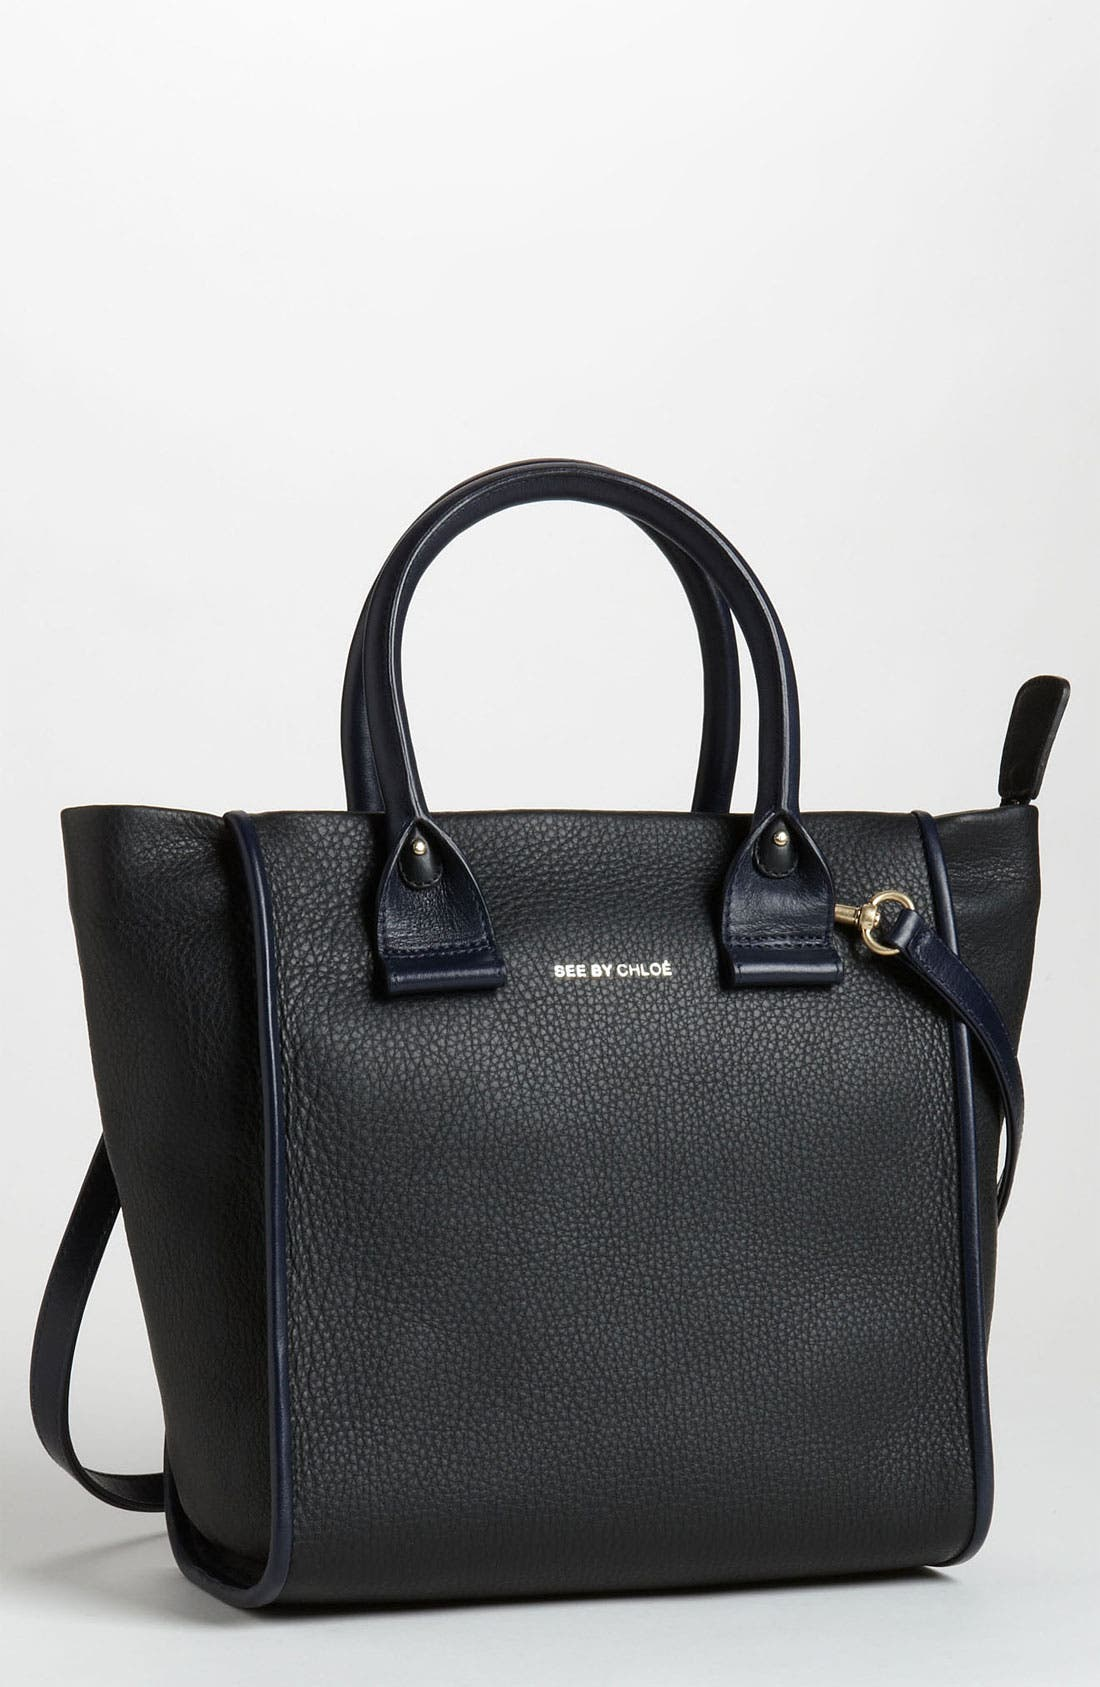 Main Image - See by Chloé 'April - Small' Tote